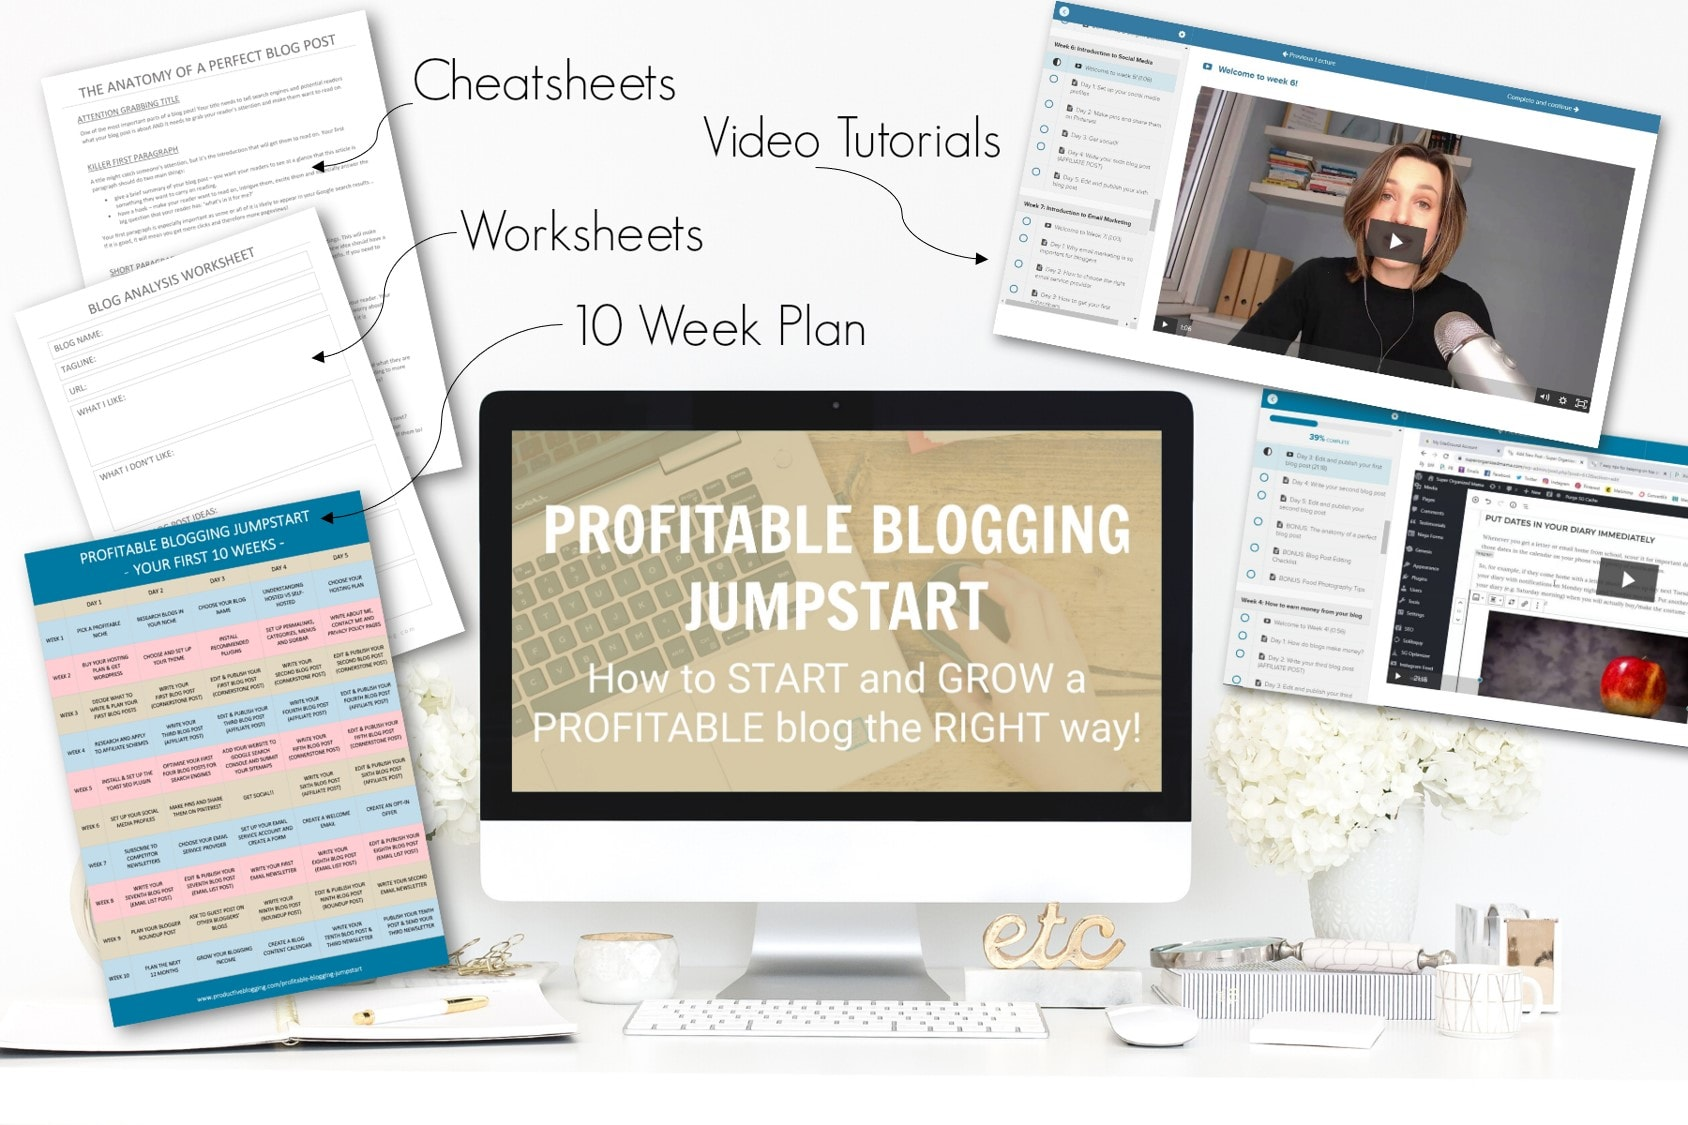 Computer mockup showing Profitable Blogging Jumpstart Course - How to START and GROW a PROFITABLE blog